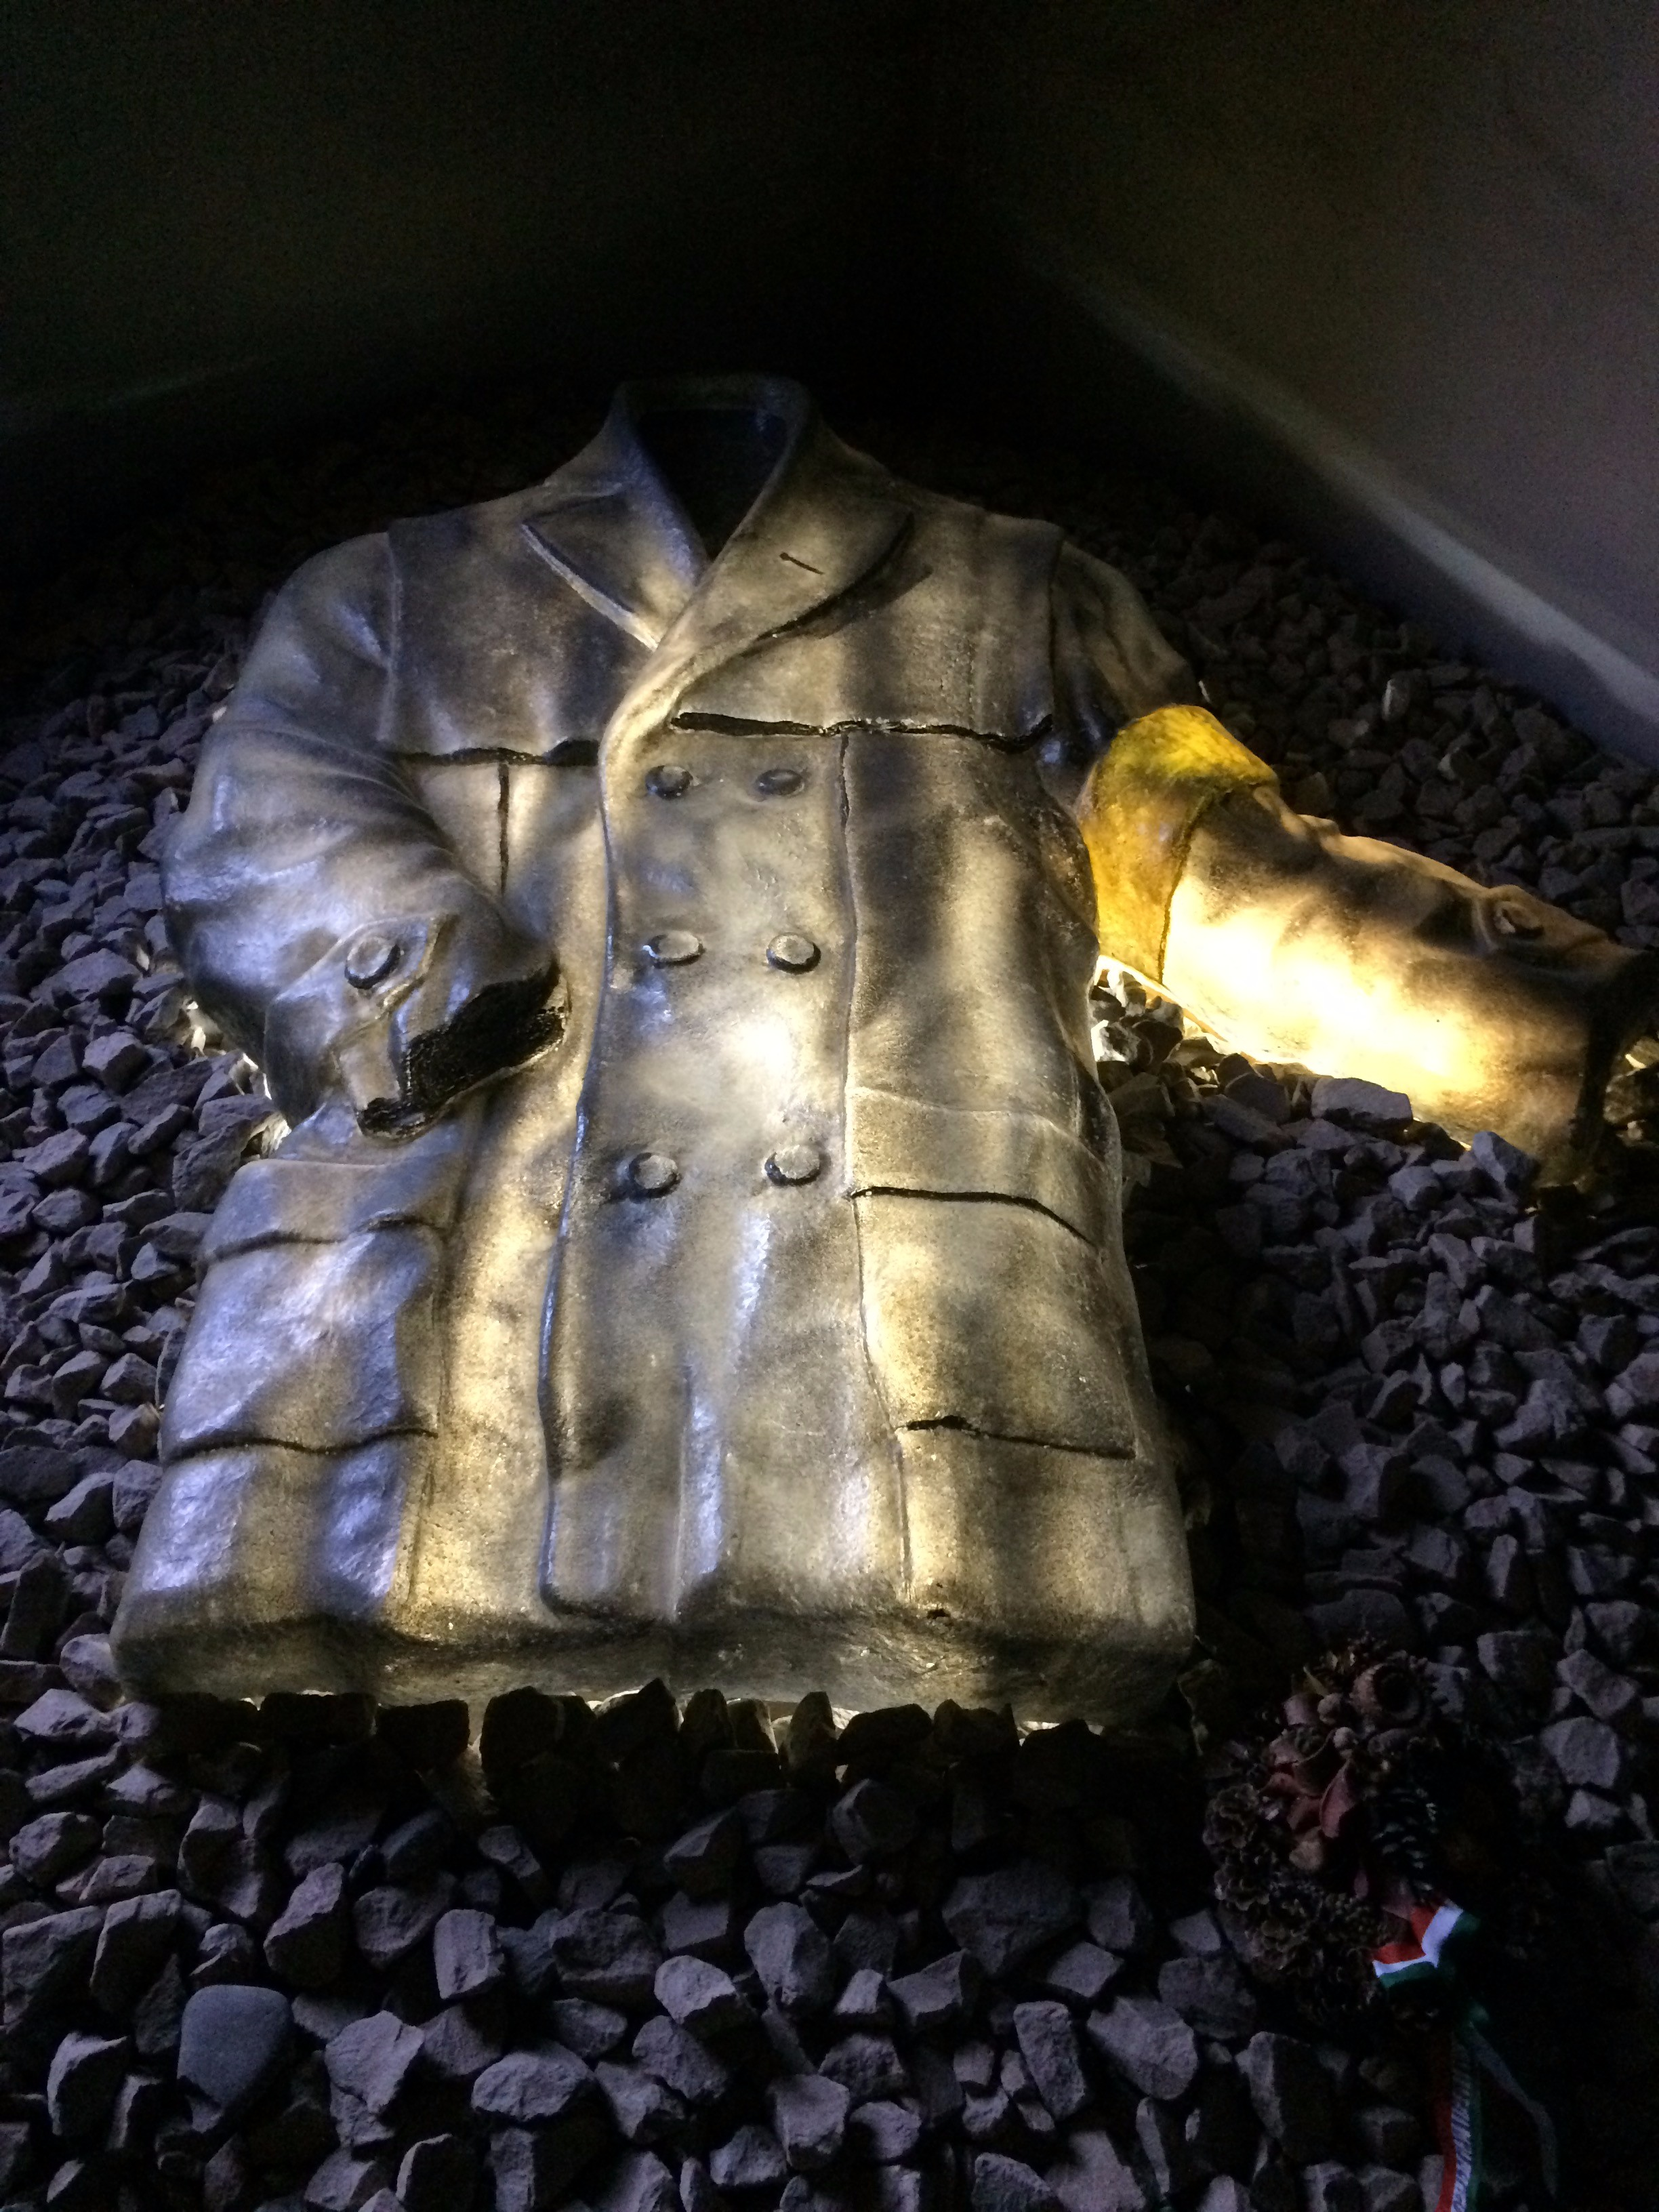 Special Exhibit in Auschwitz I